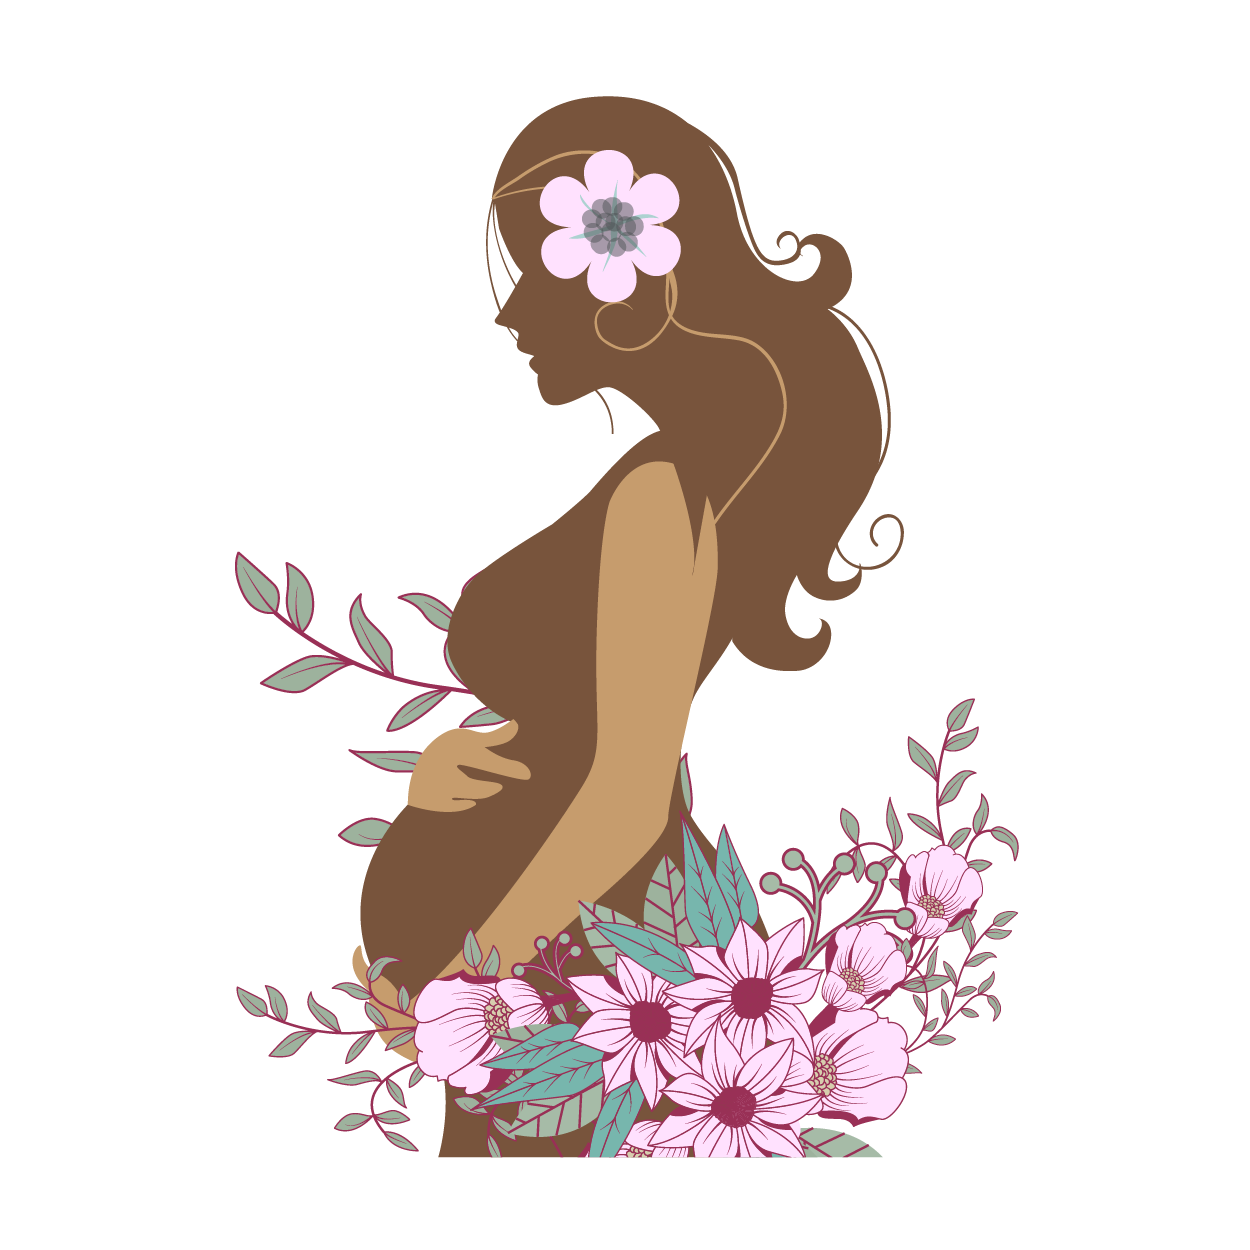 Pregnant women with flowers cliparts clip art download Pregnancy Woman Childbirth Clip art - Vector pregnant woman ... clip art download